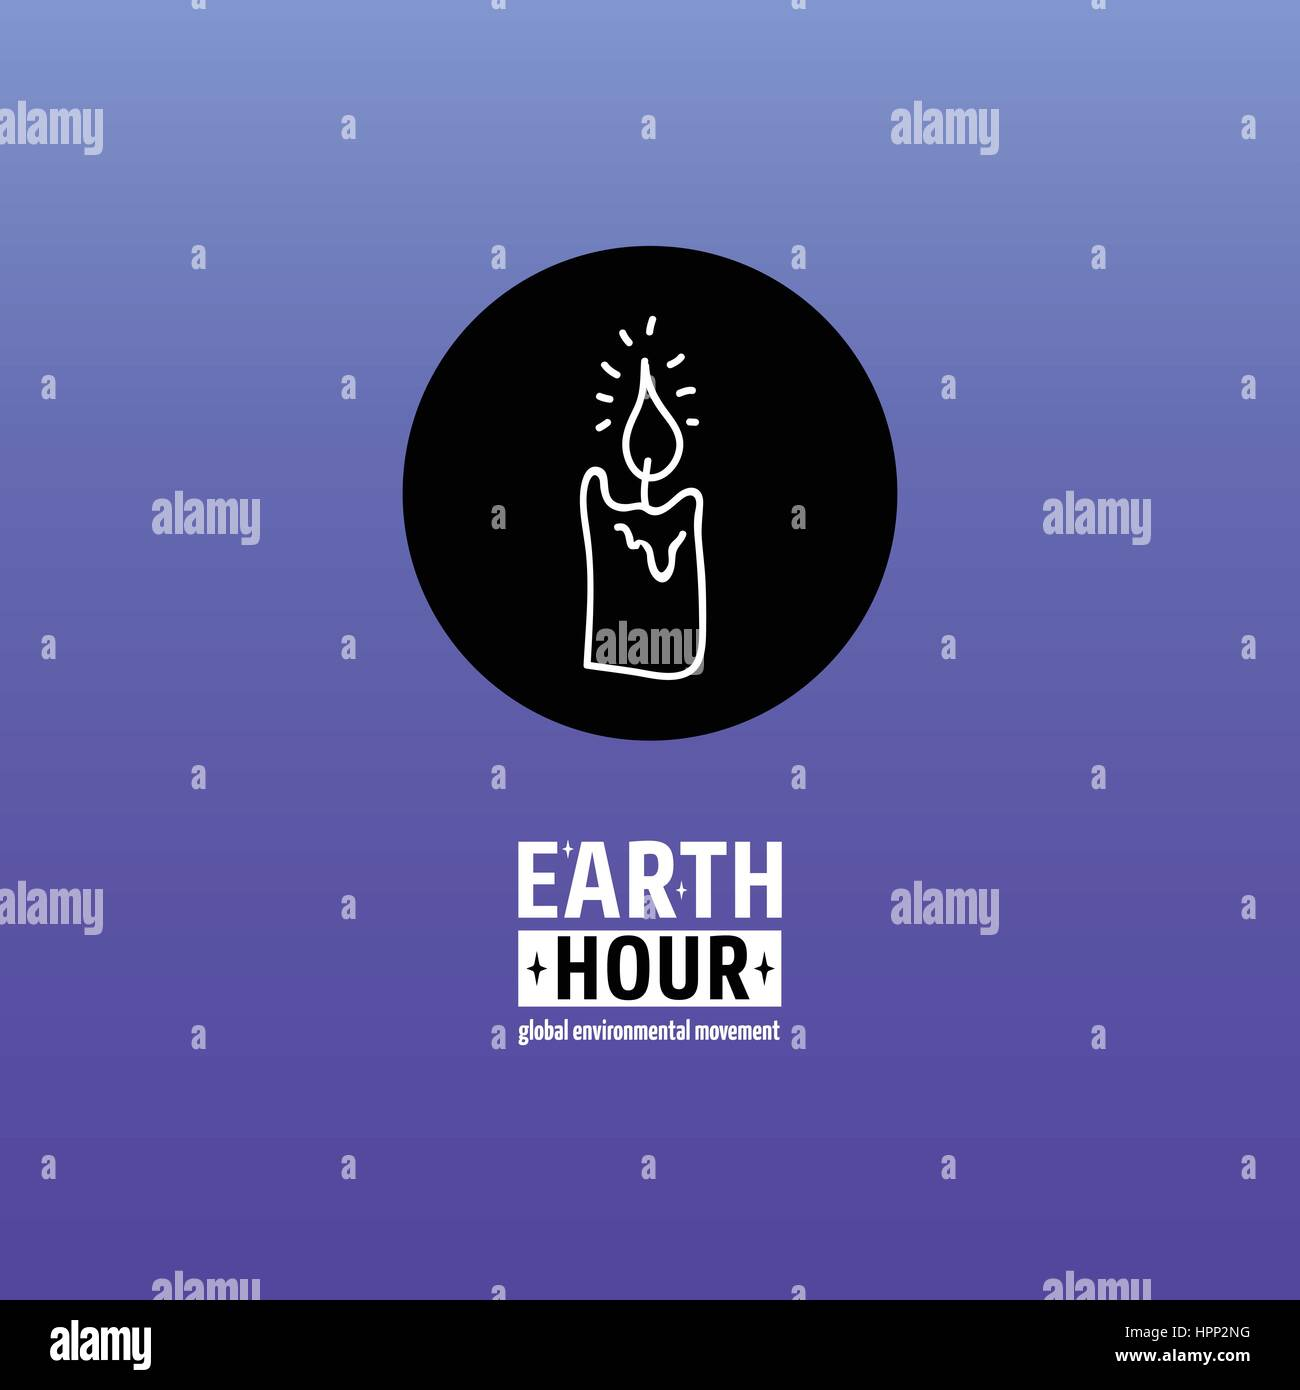 Earth Hour is a Global Environmental Movement. Vector icon with text. Concept of energy saving and changing climate - Stock Vector